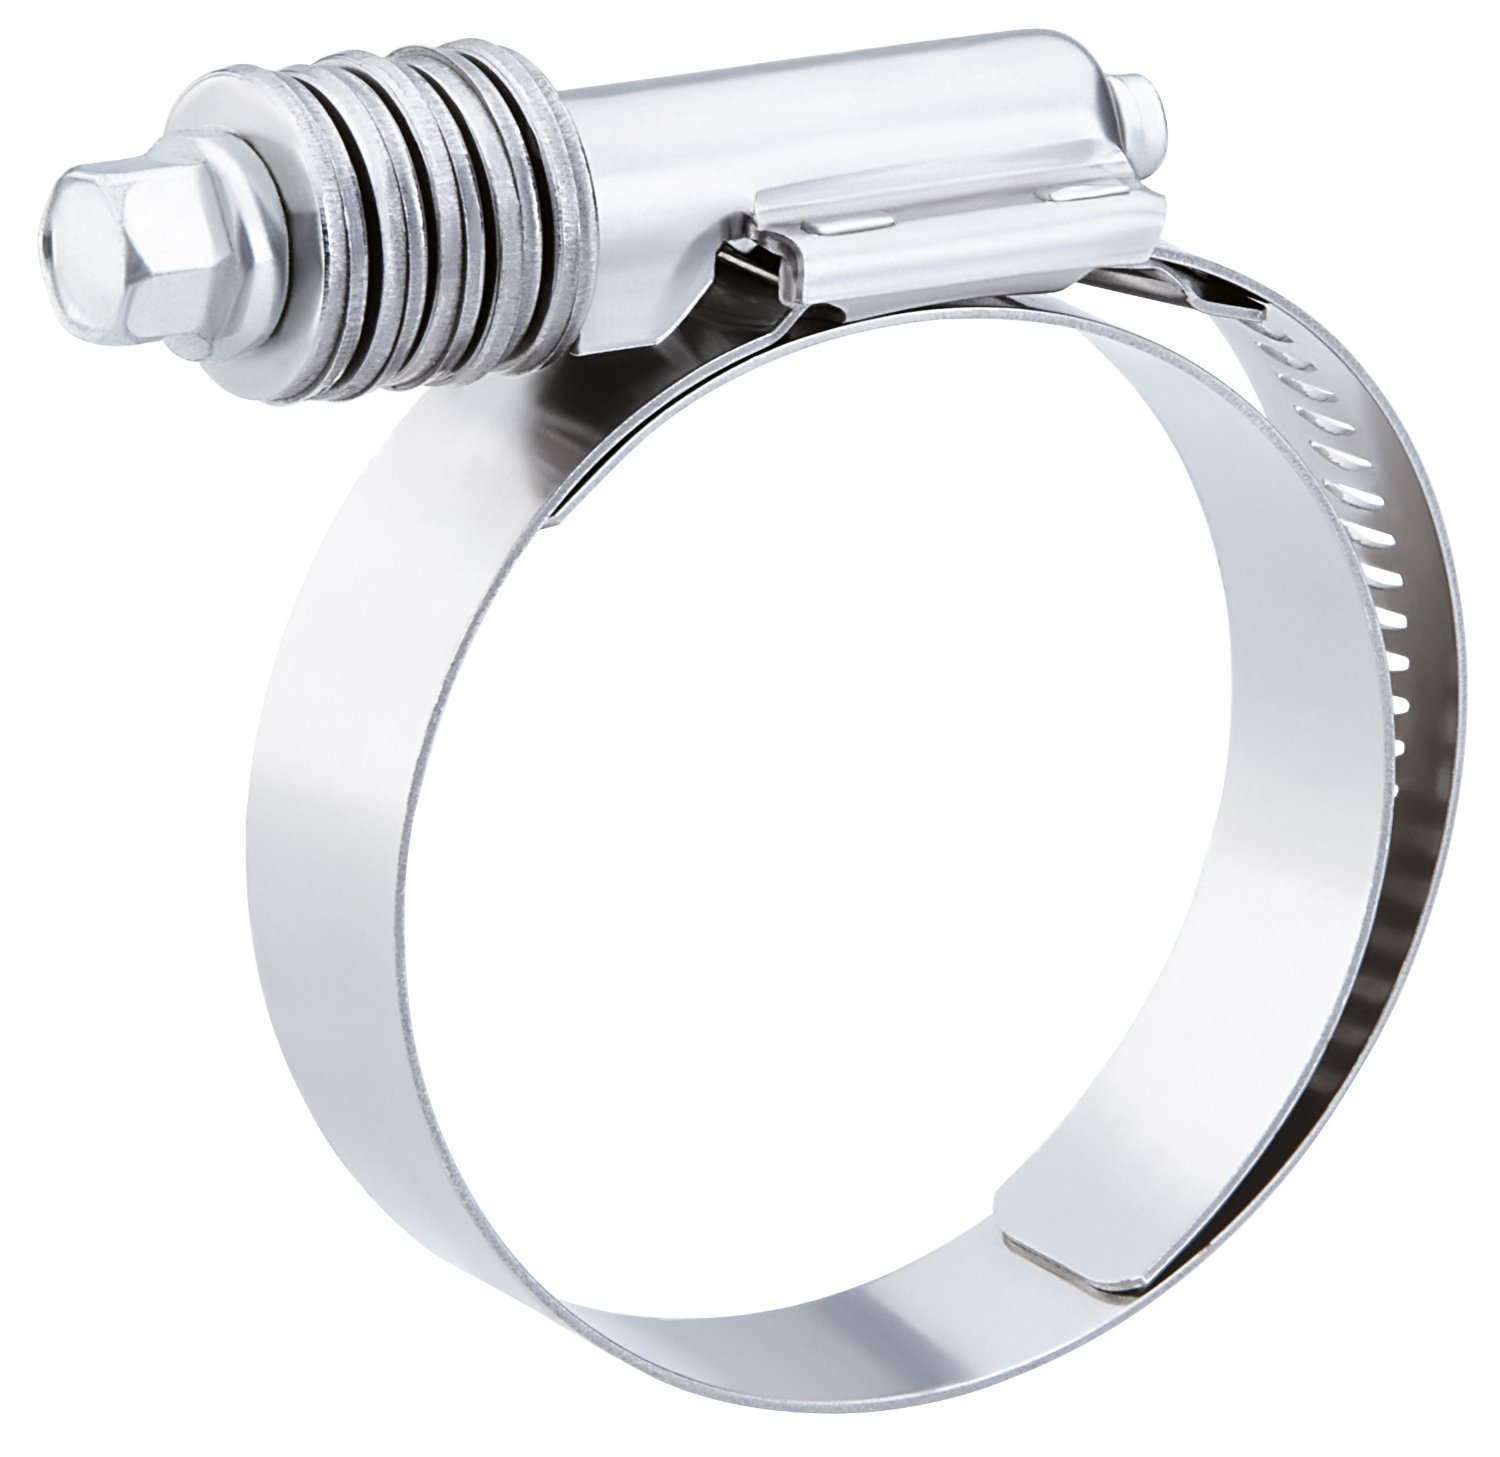 5 Pack Breeze CT-600L Heavy Duty Constant Torque Liner Clamp with Stainless Screw Effective Diameter Range: 5-1/4'' - 6-1/8'' (133mm - 156mm)